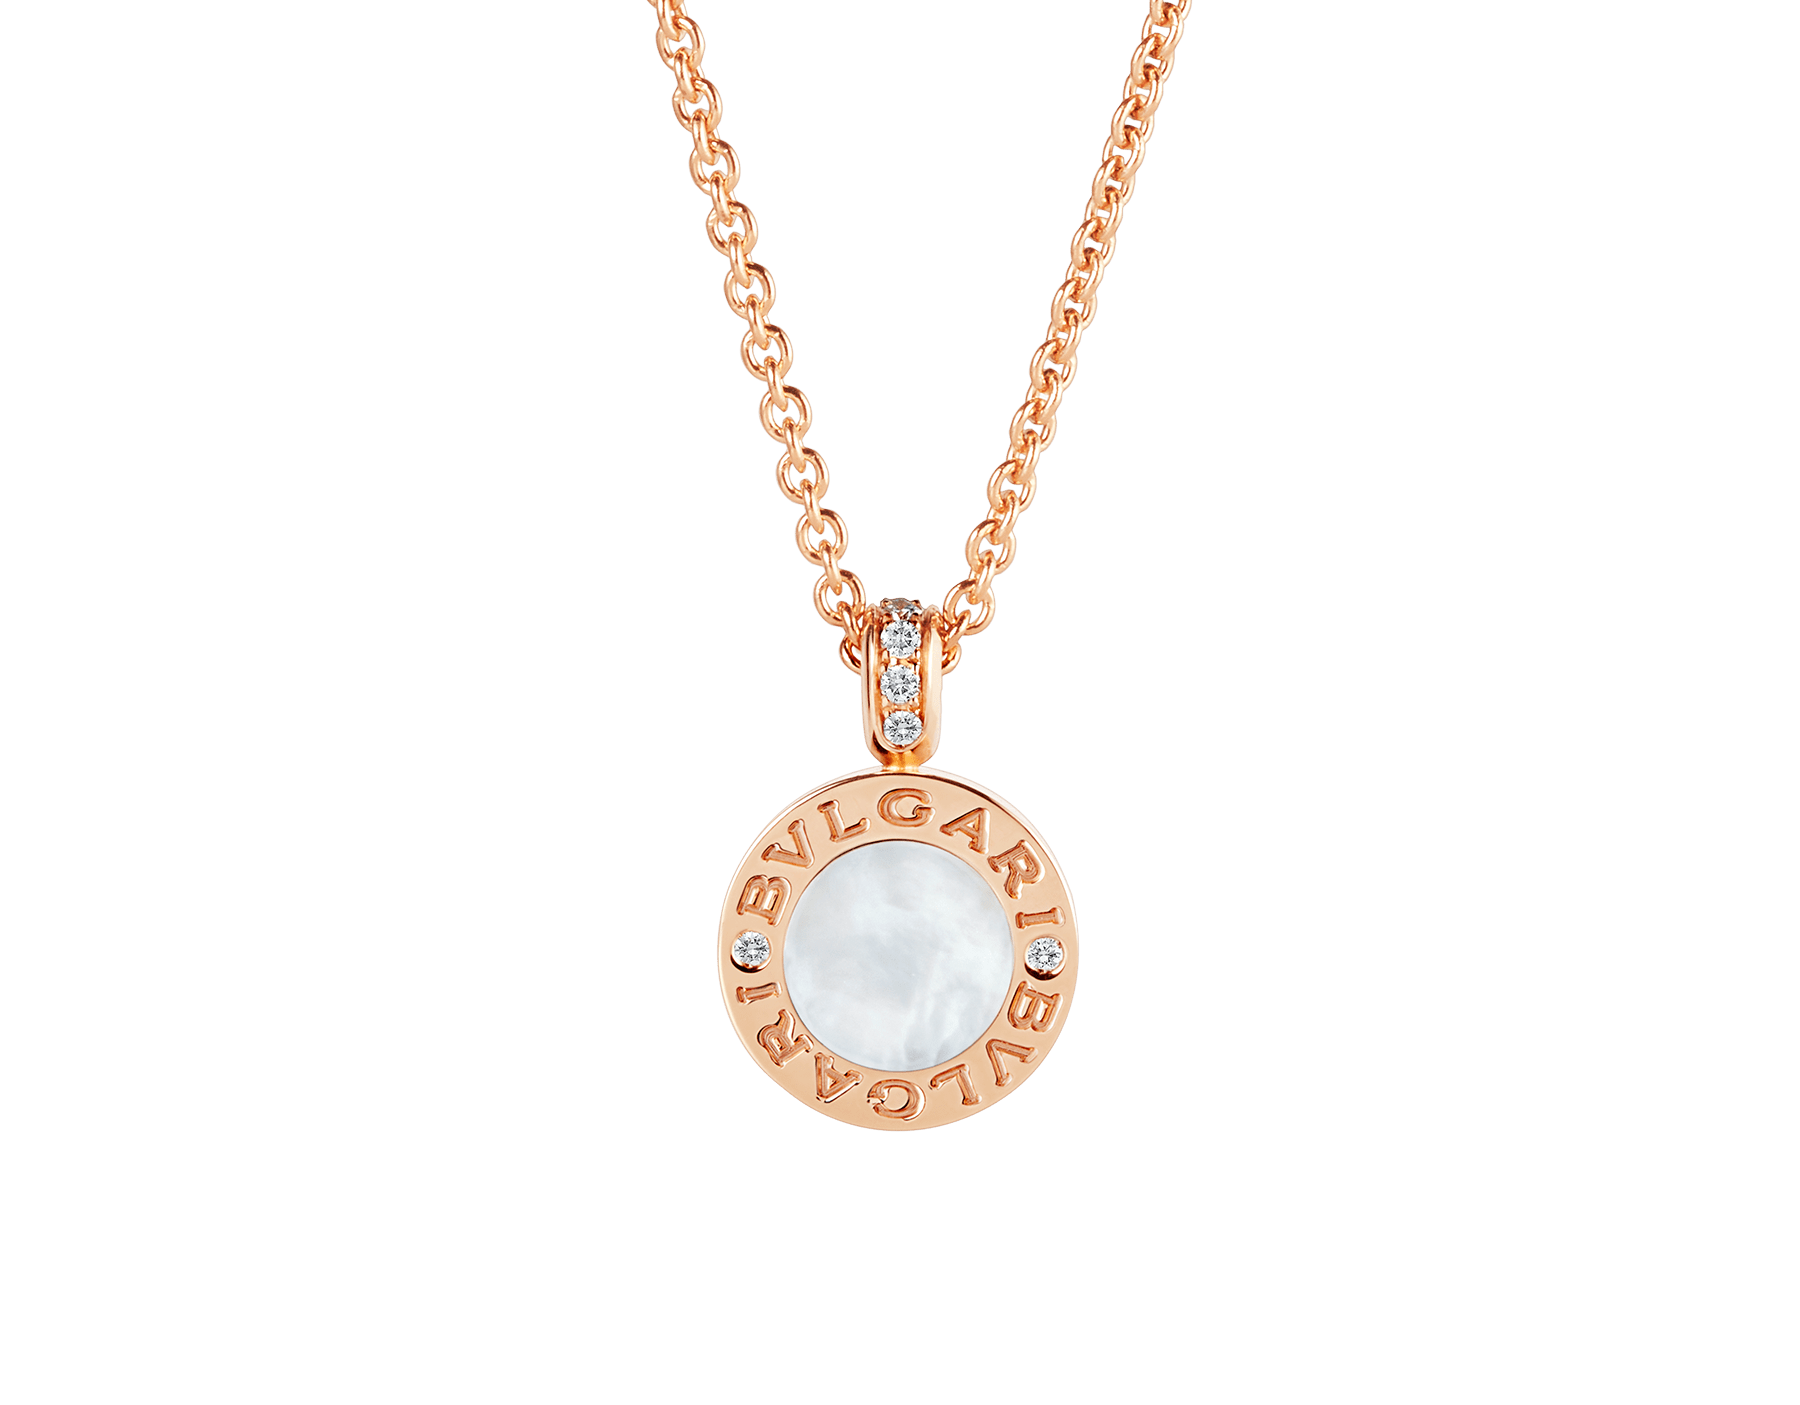 BVLGARI BVLGARI necklace with 18 kt rose gold chain and pendant, set with carnelian and mother-of-pearl discs and with details in pavé diamonds. 352883 image 4